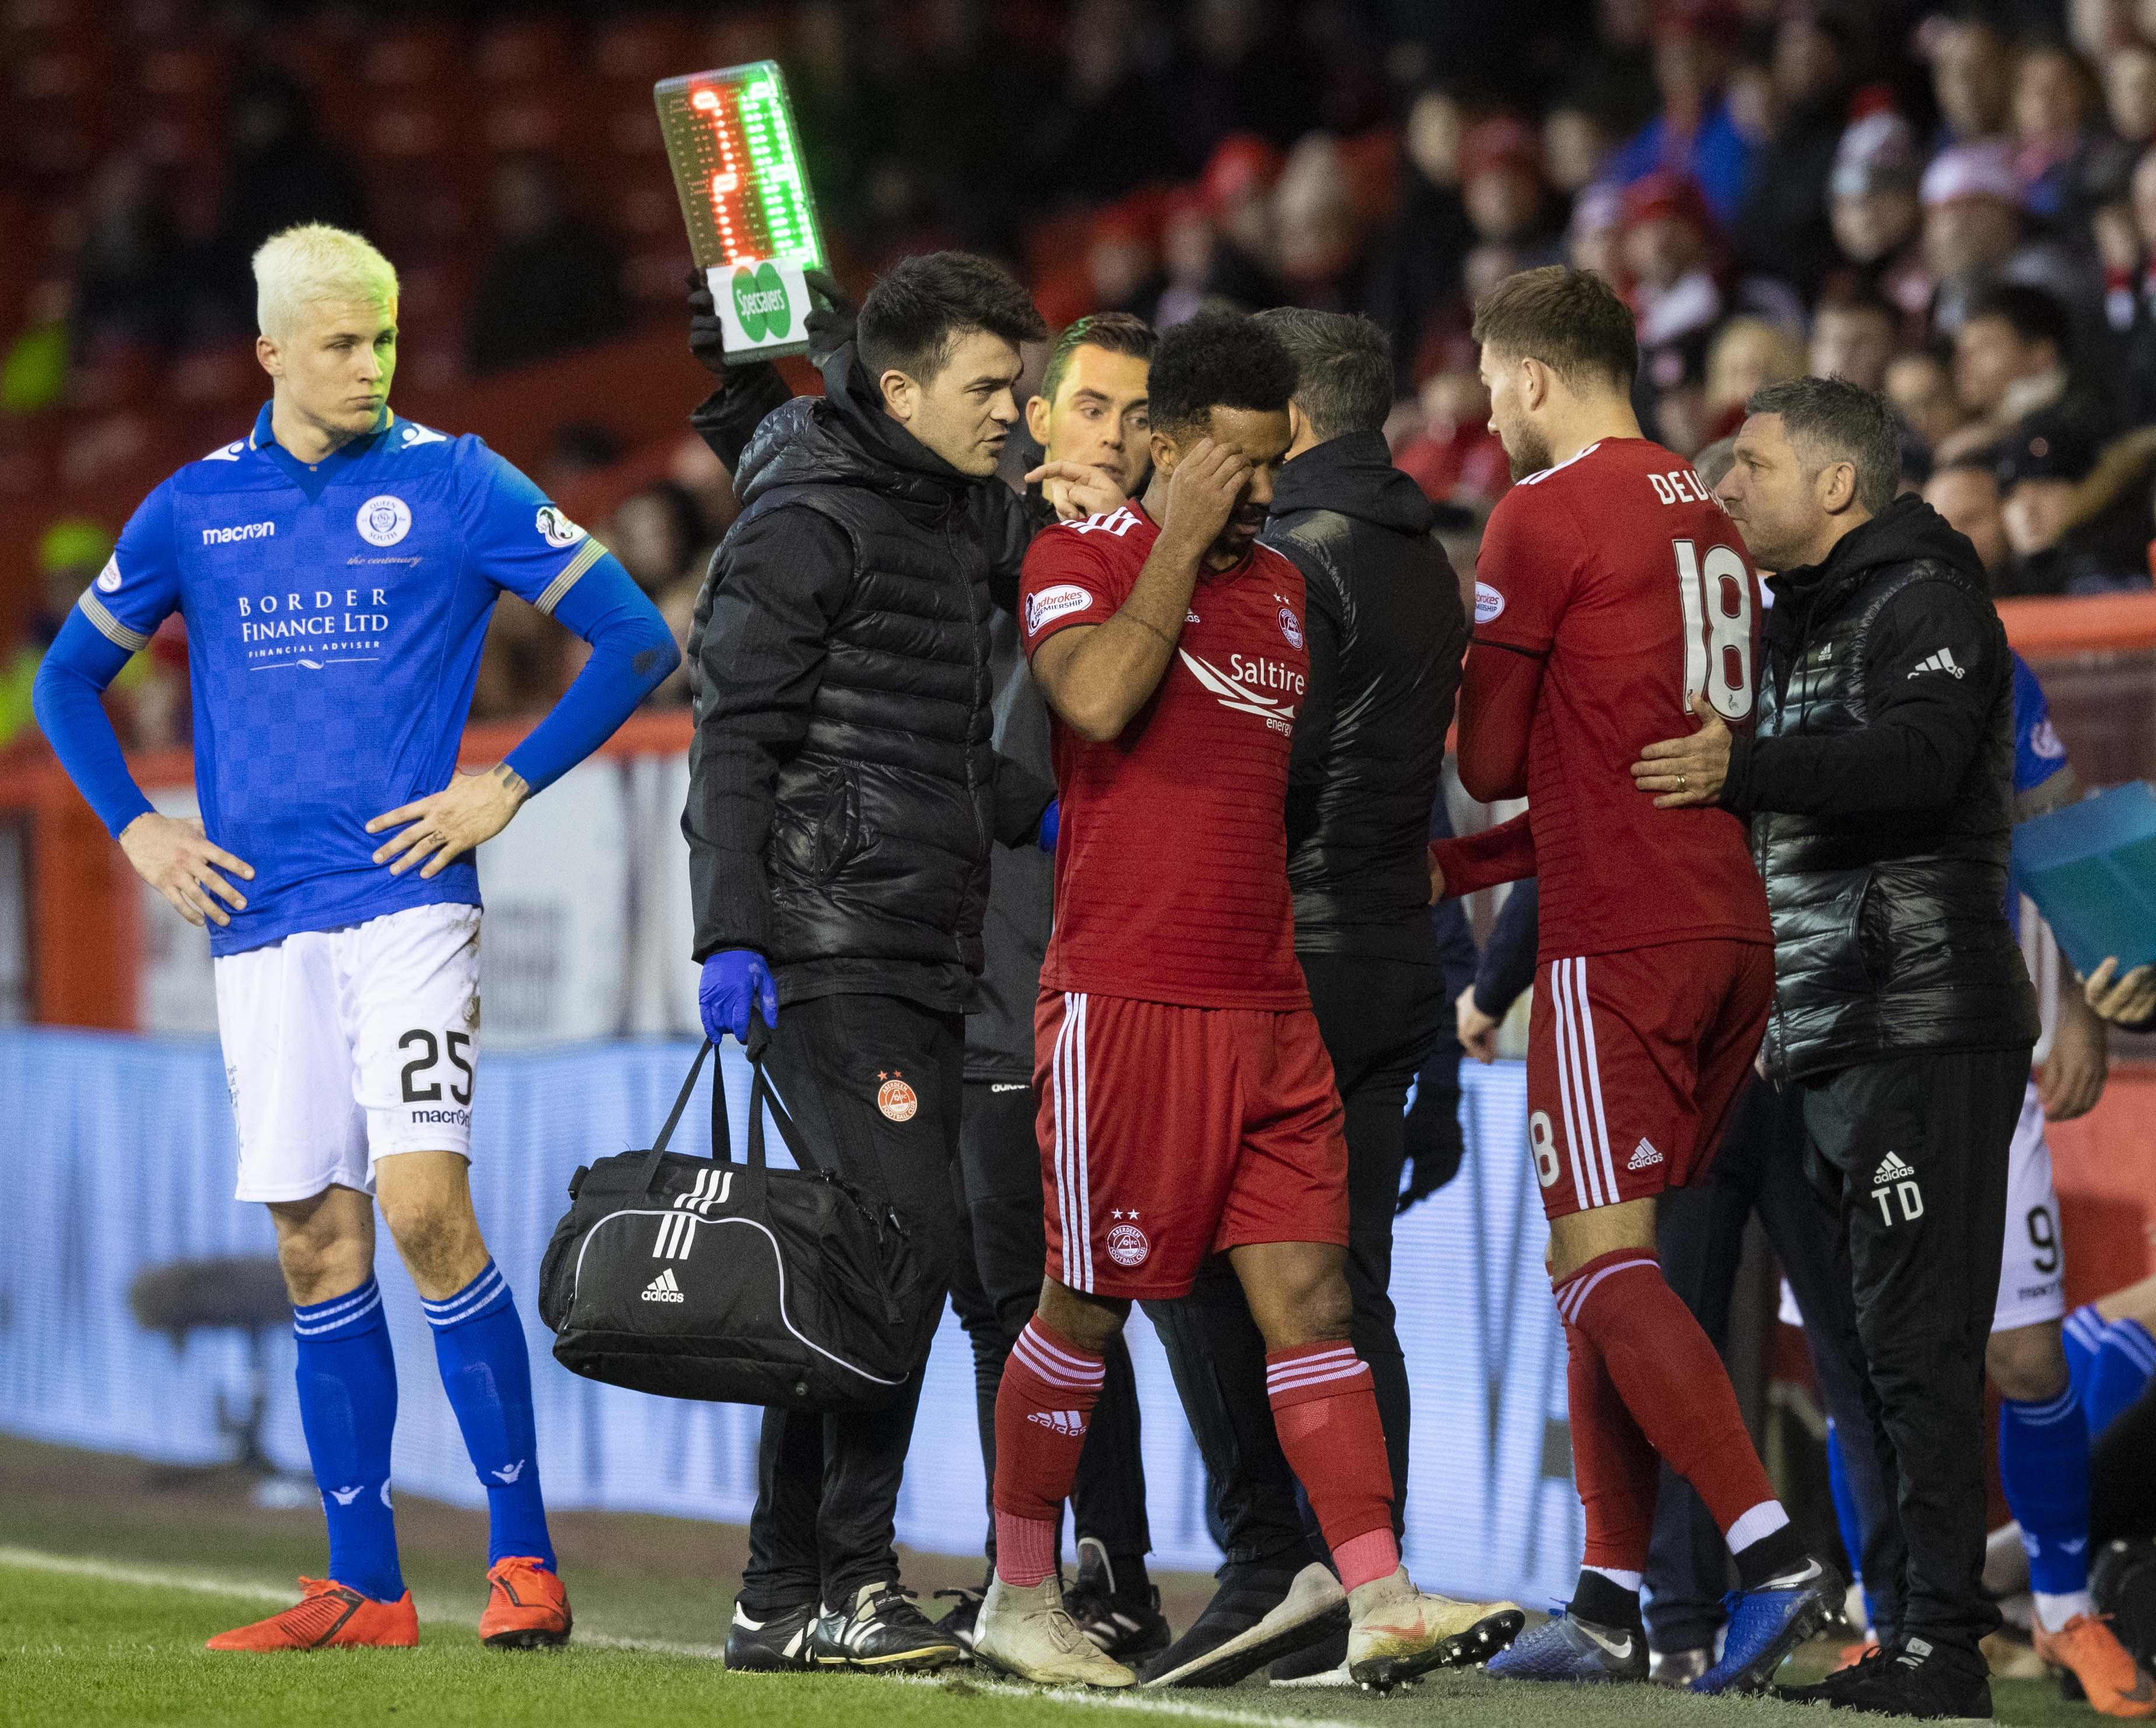 Aberdeen's Shay Logan is substituted for Michael Devlin.